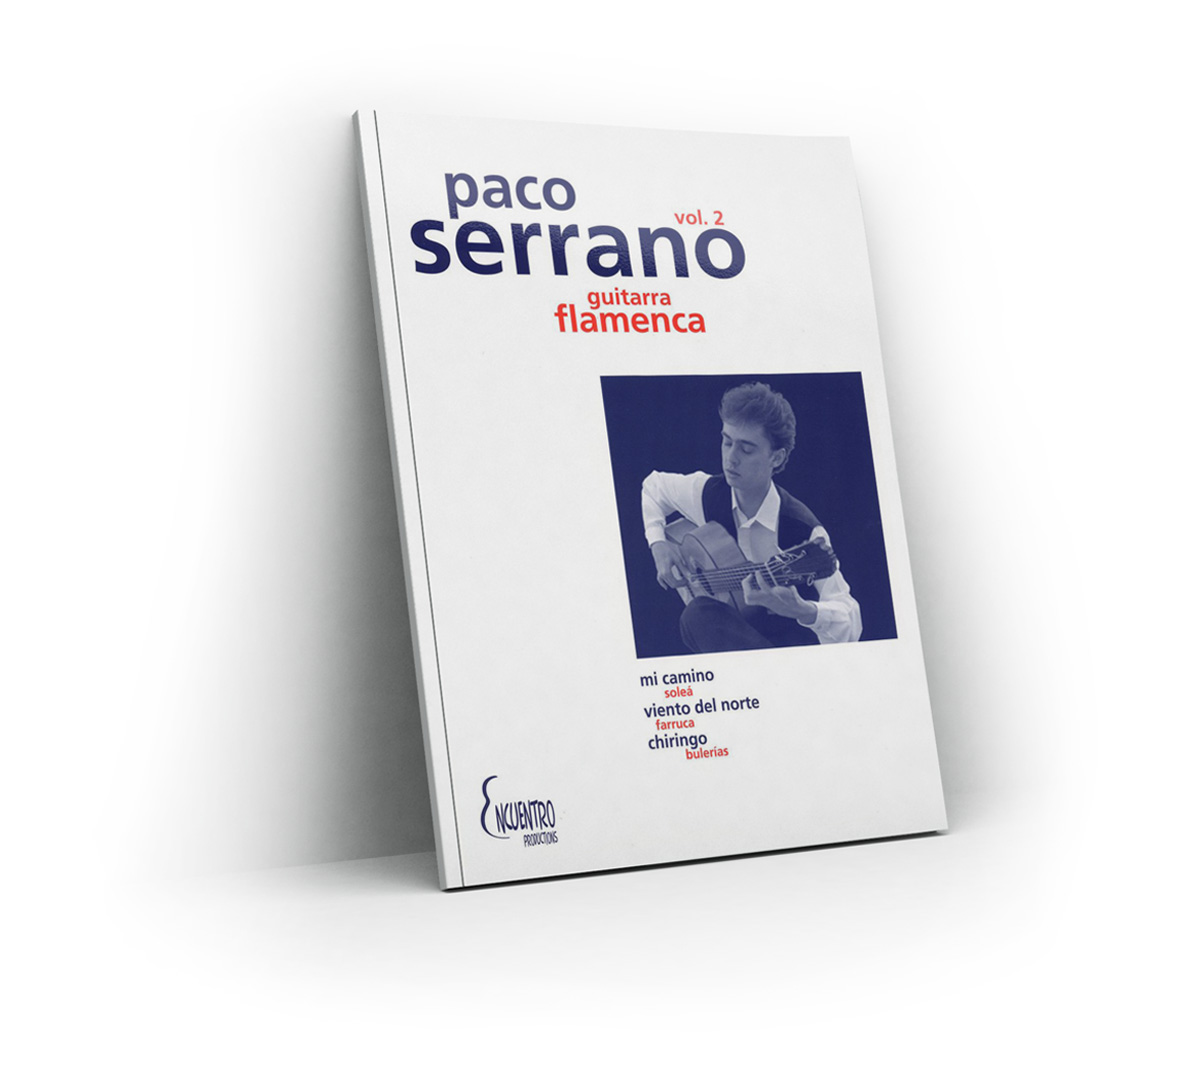 Flamenco Guitar Vol 2 (Score book) - Paco Serrano